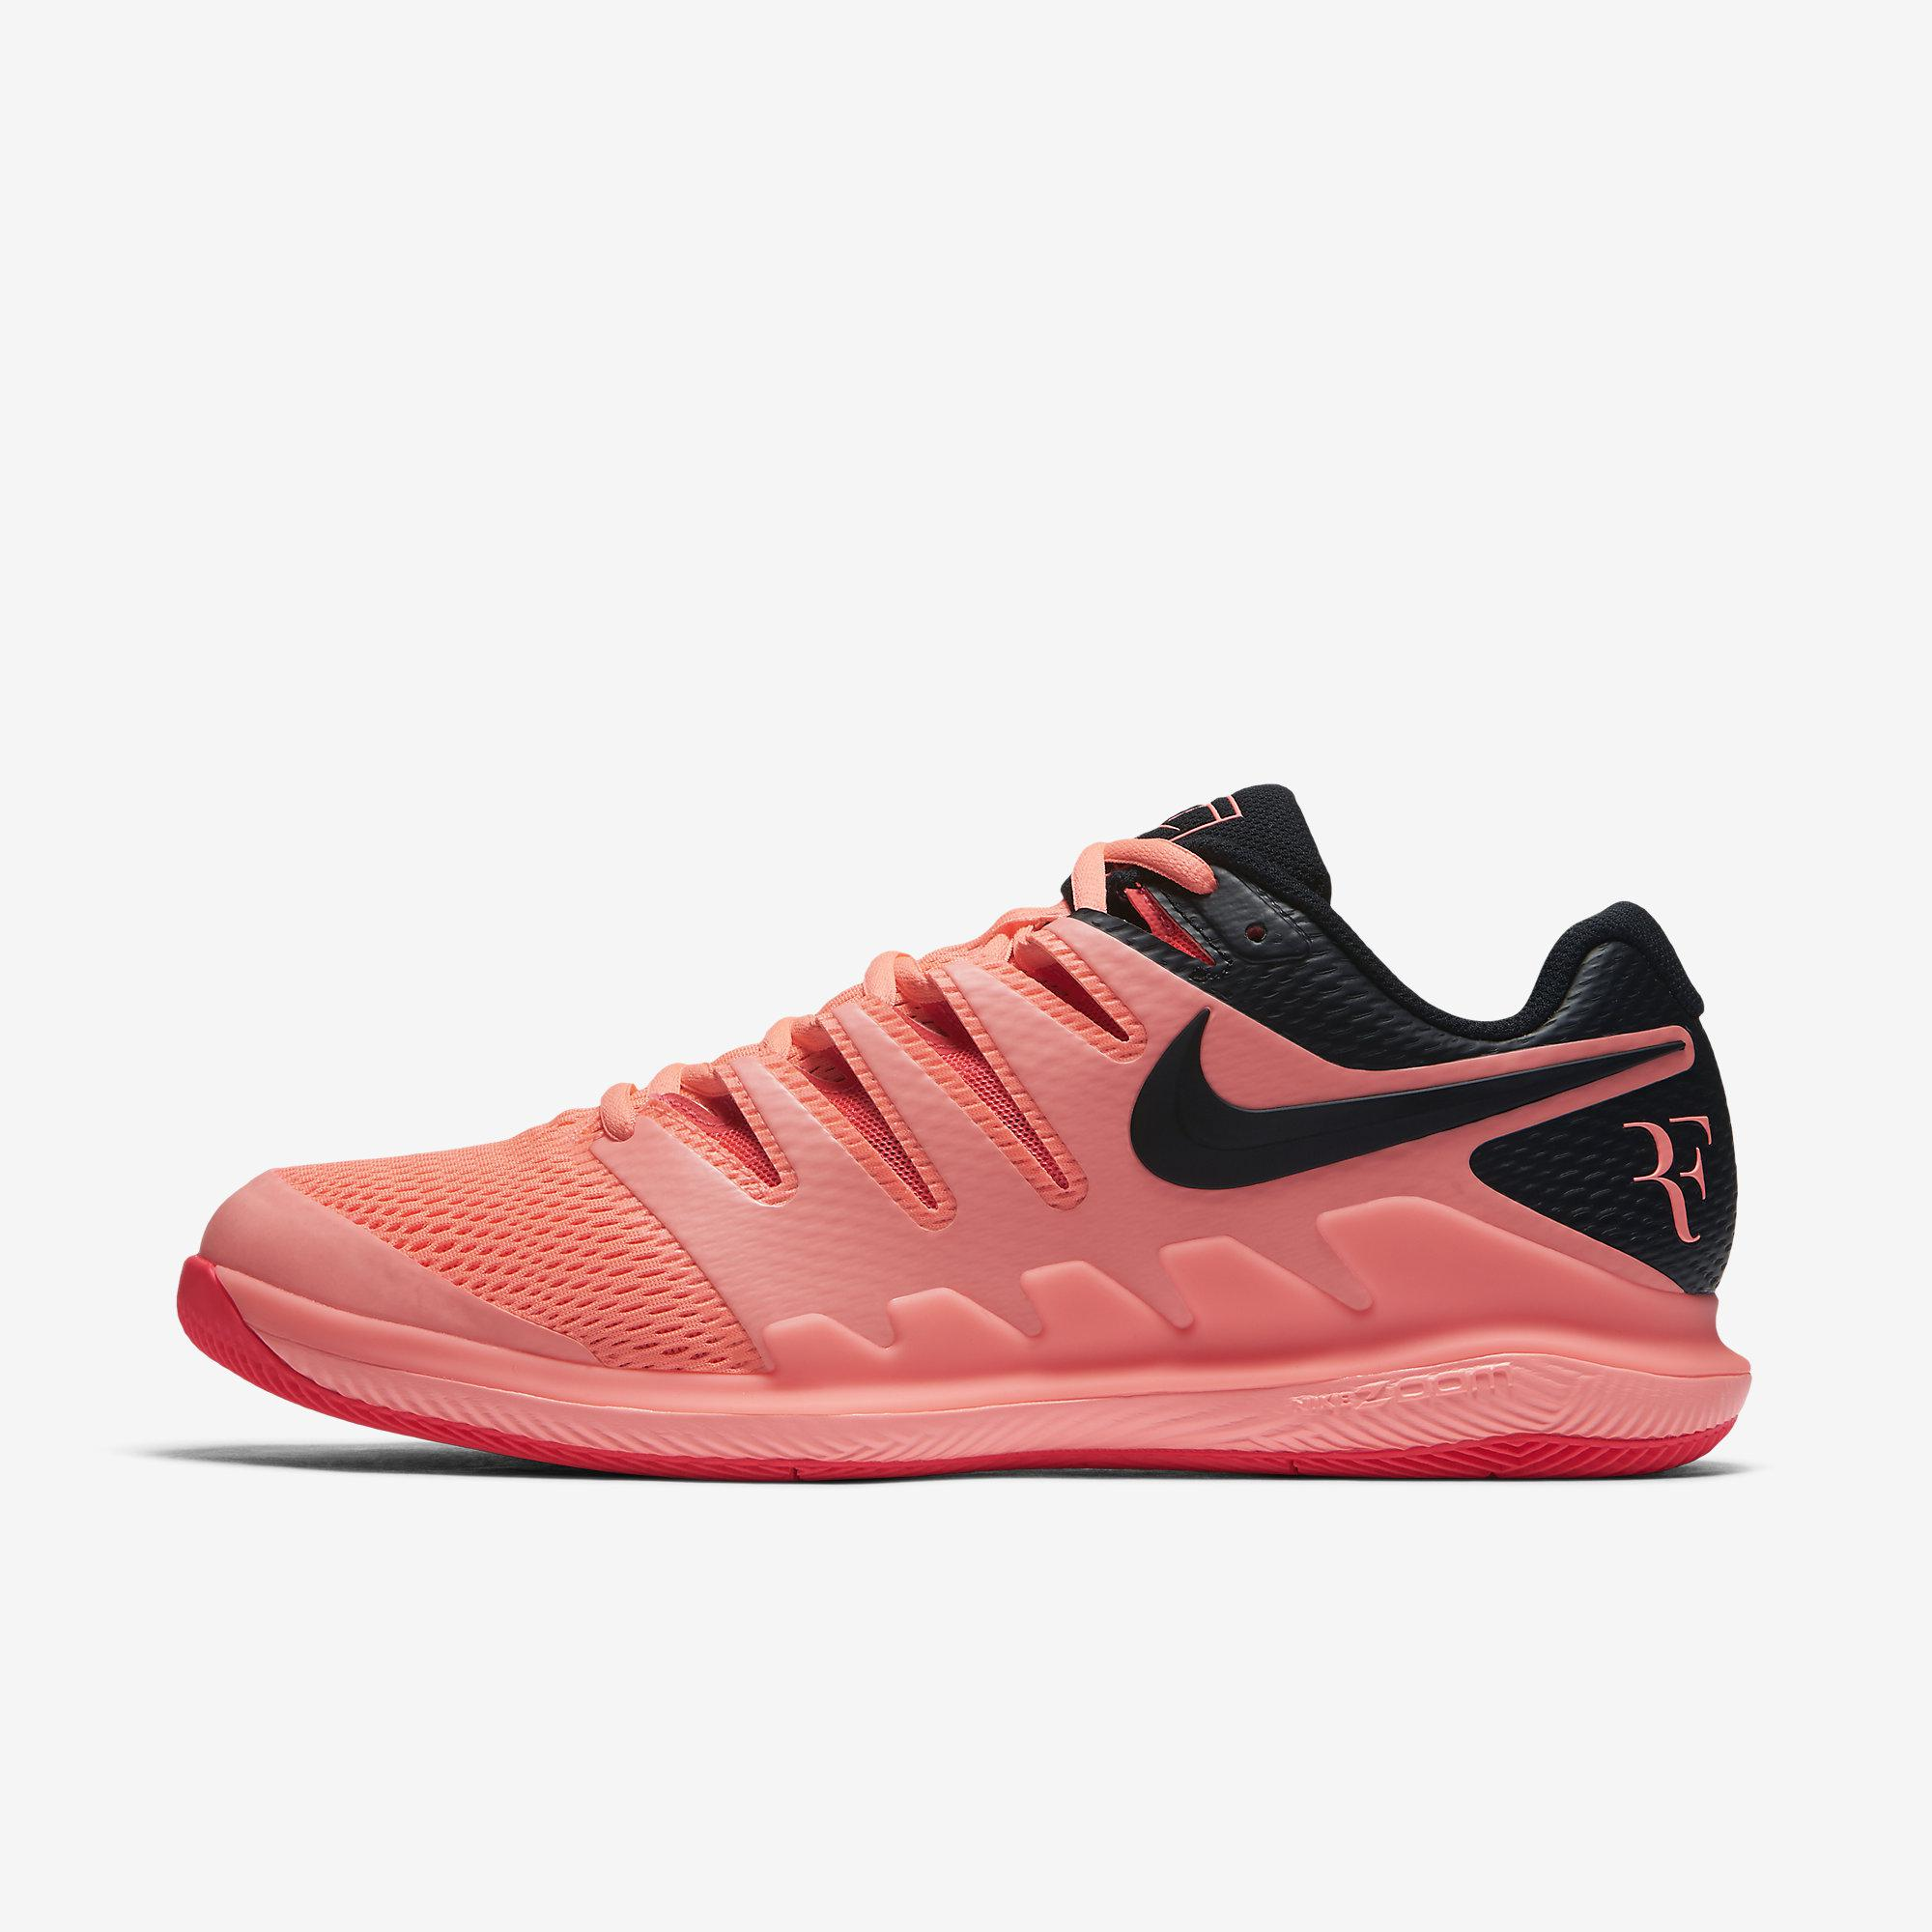 buy online 4169f 042ba Nike Mens Air Zoom Vapor X RF Tennis Shoes - Lava Glow Solar Red Black -  Tennisnuts.com